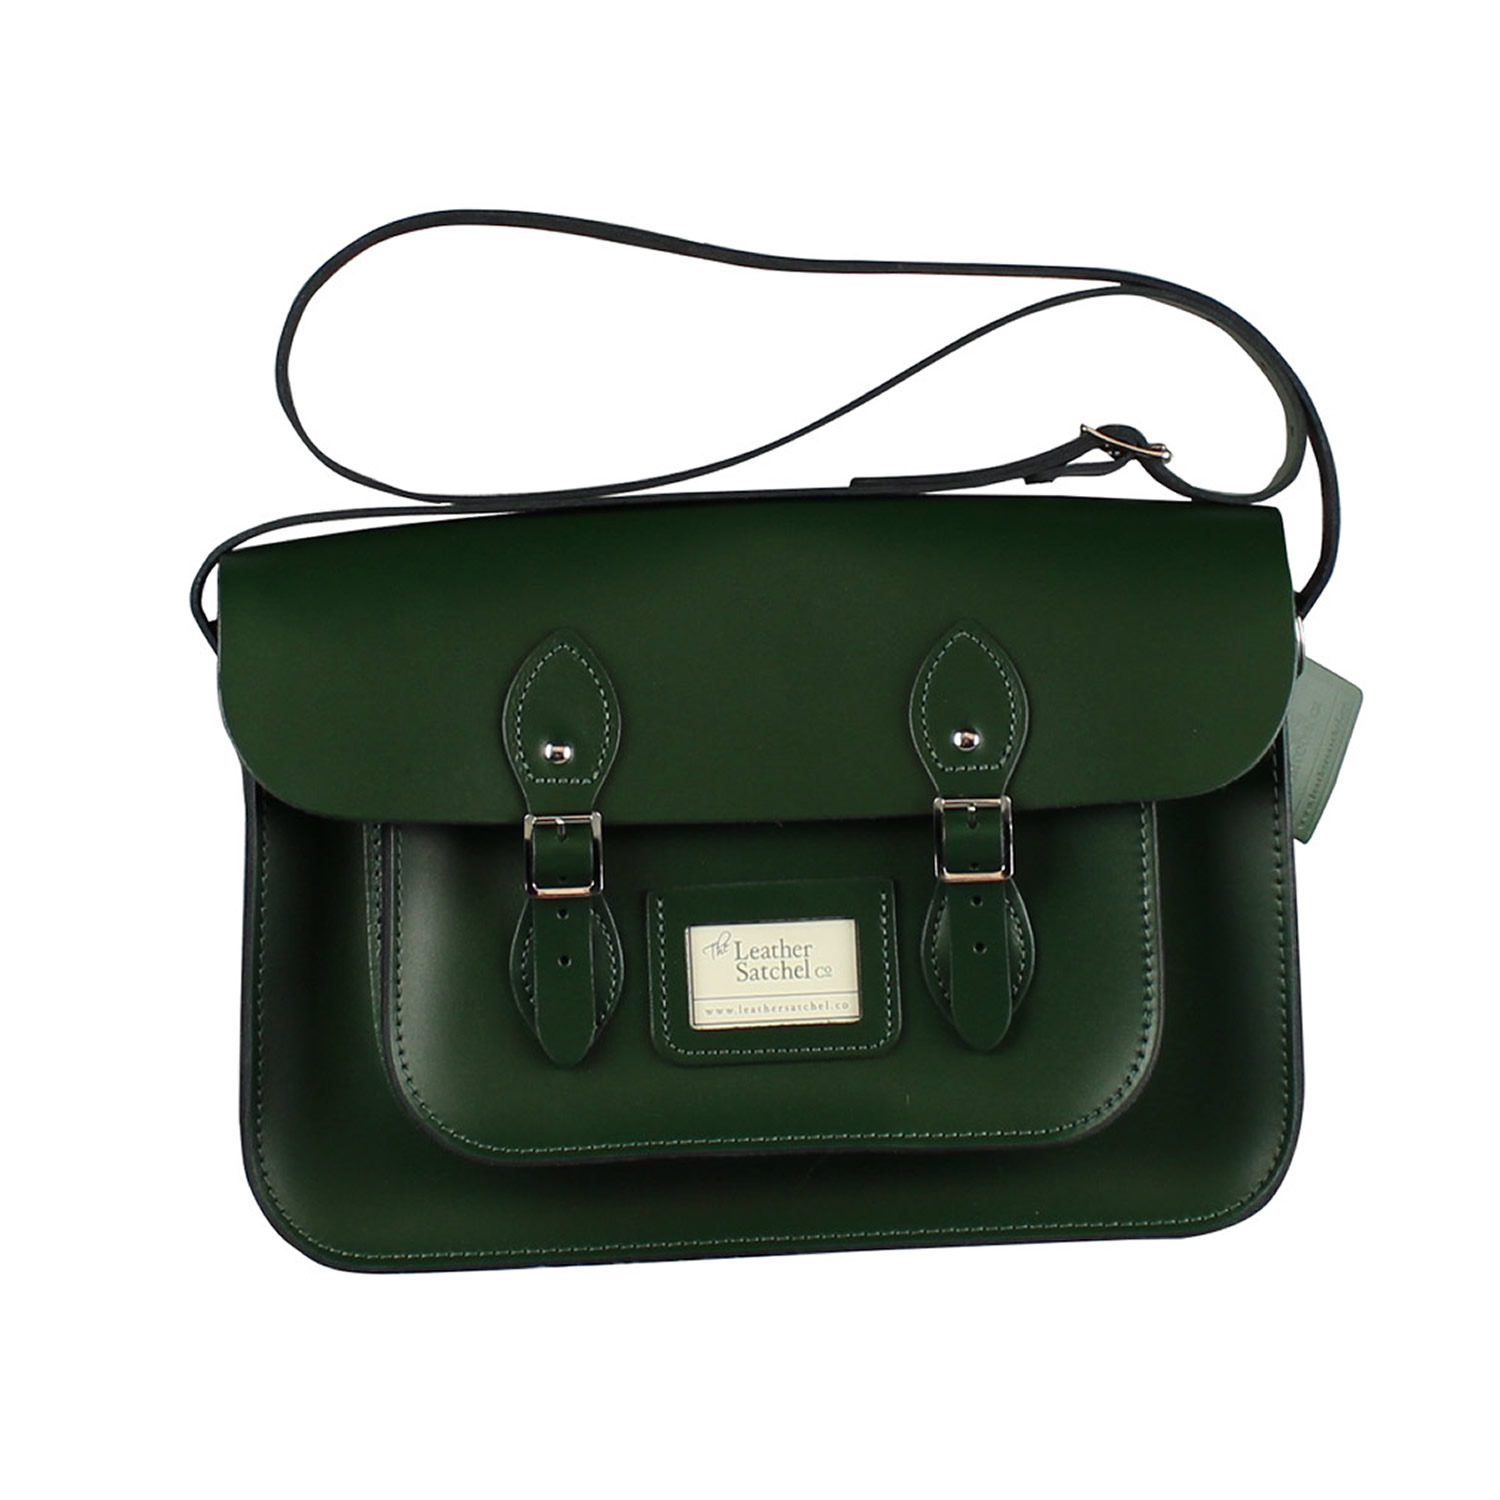 The Leather Satchel Co Uk S 14 Inch Classic Racer Green Mint And New Made In Men Fashion Bags Wallets On Carou